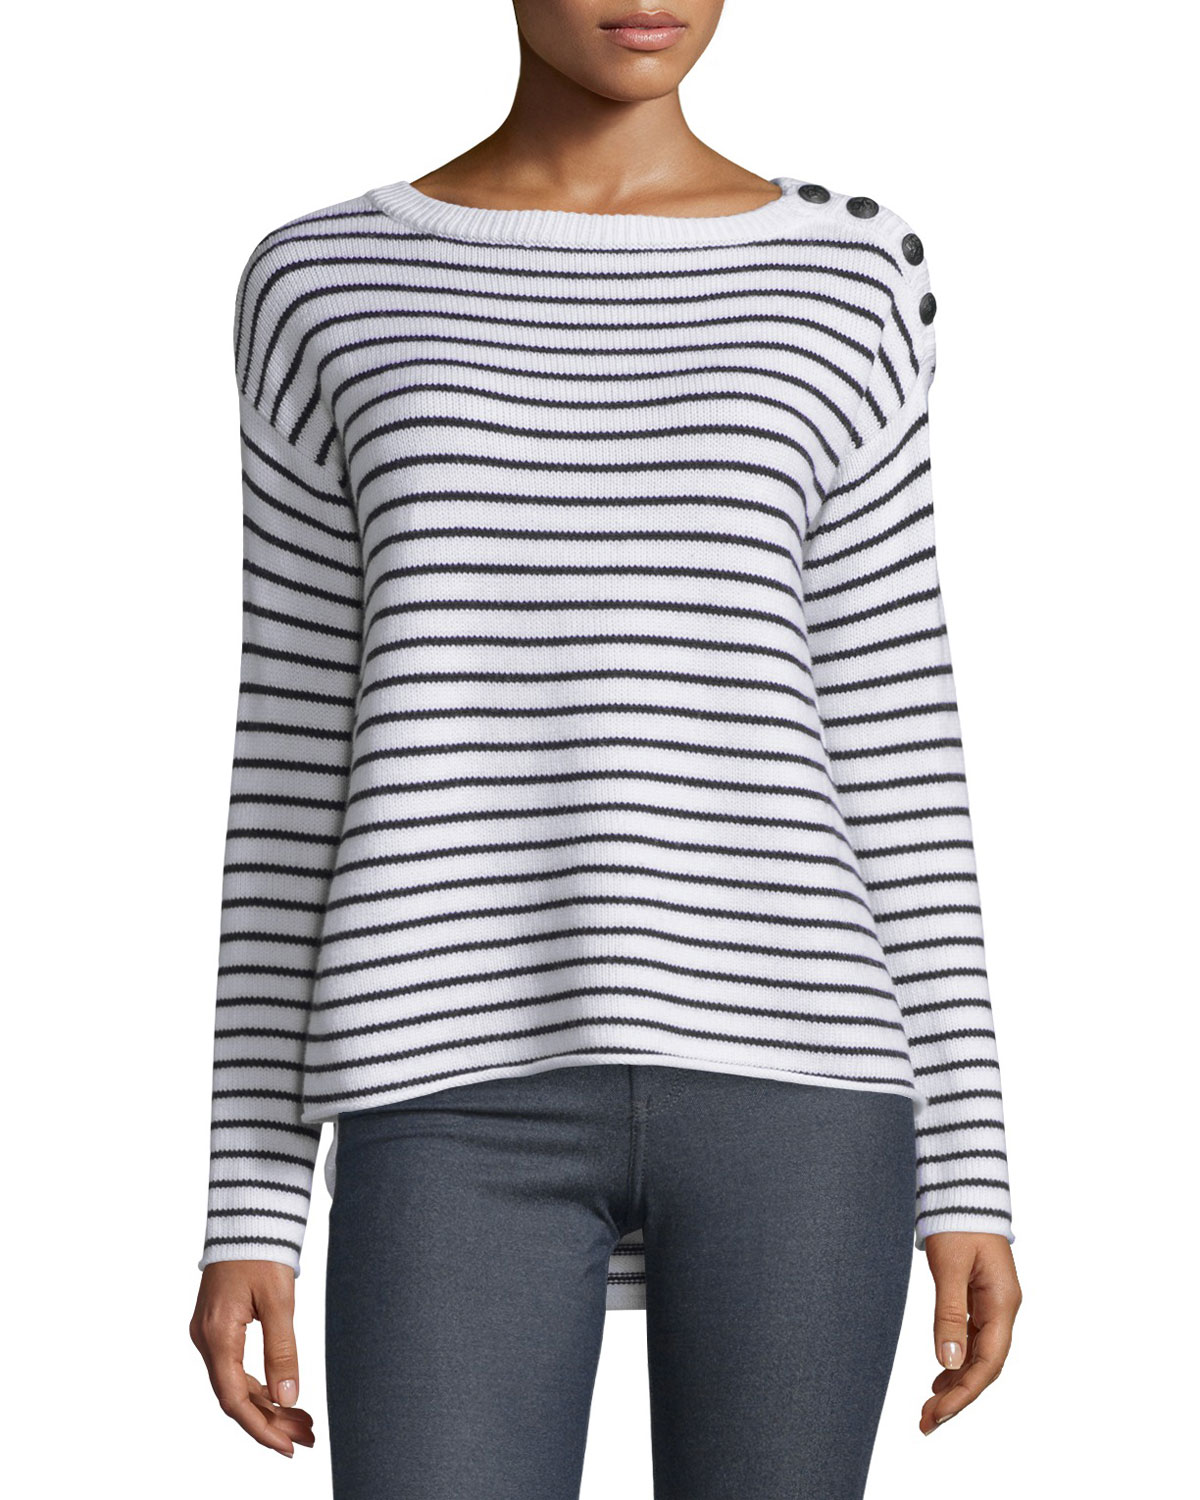 Striped Wool Sailor Sweater, Black/White, Size: M, Black/Wht Stripe - ATM